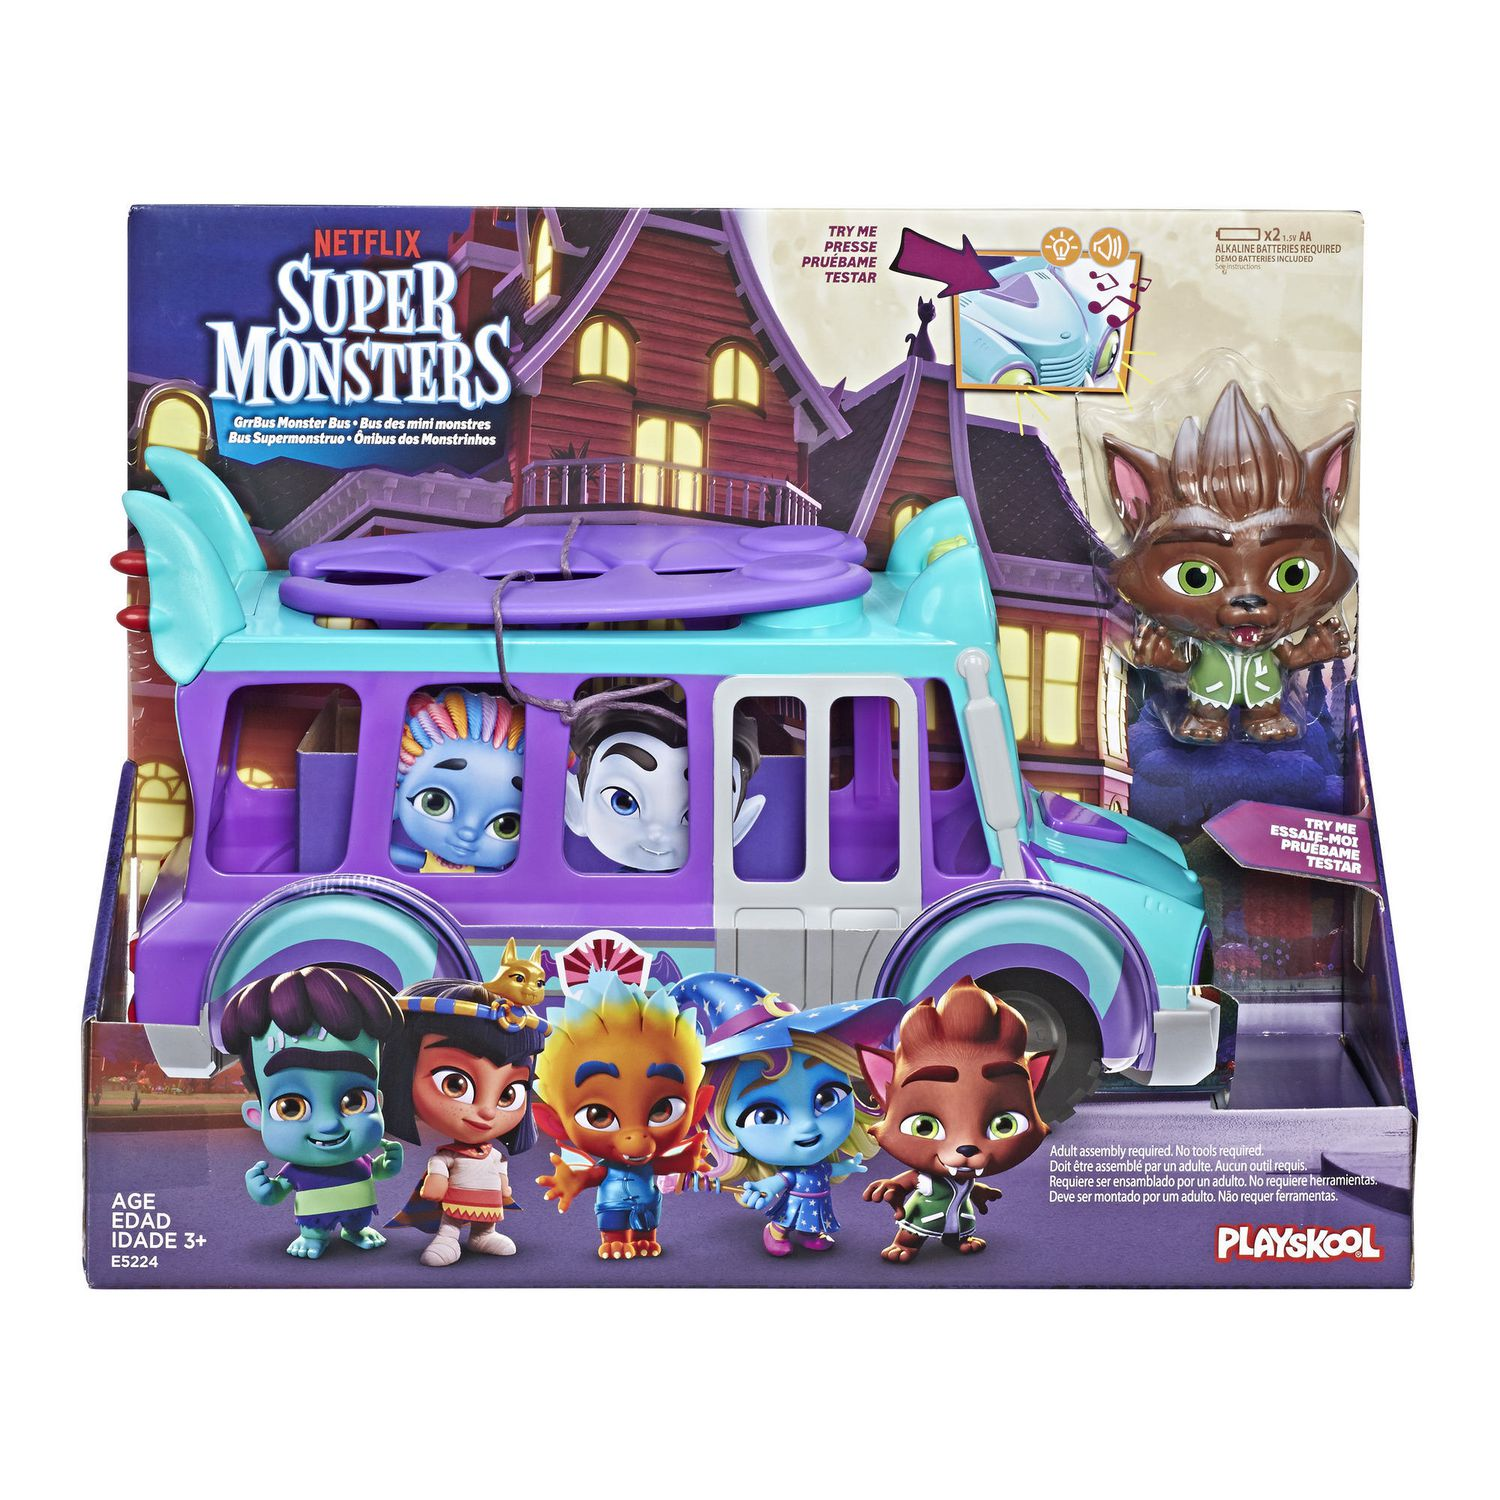 Netflix Super Monsters Grrbus Monster Bus Toy With Lights Sounds And Music Ages 3 And Up